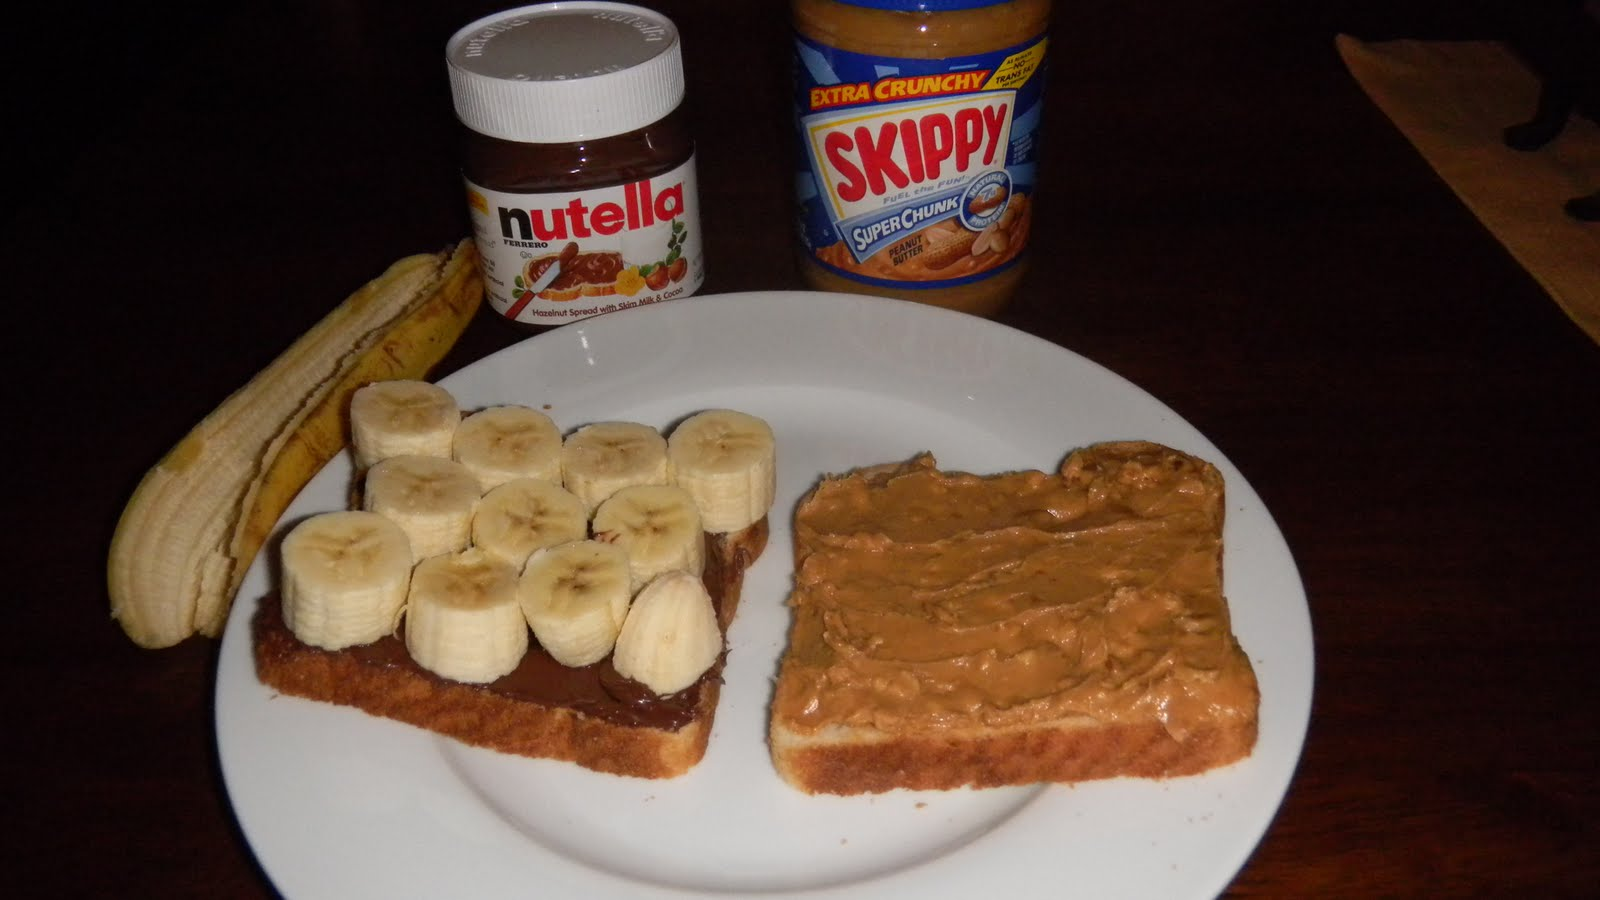 ... of an Omnivore: The Peanut Butter, Nutella, and Banana Sandwich